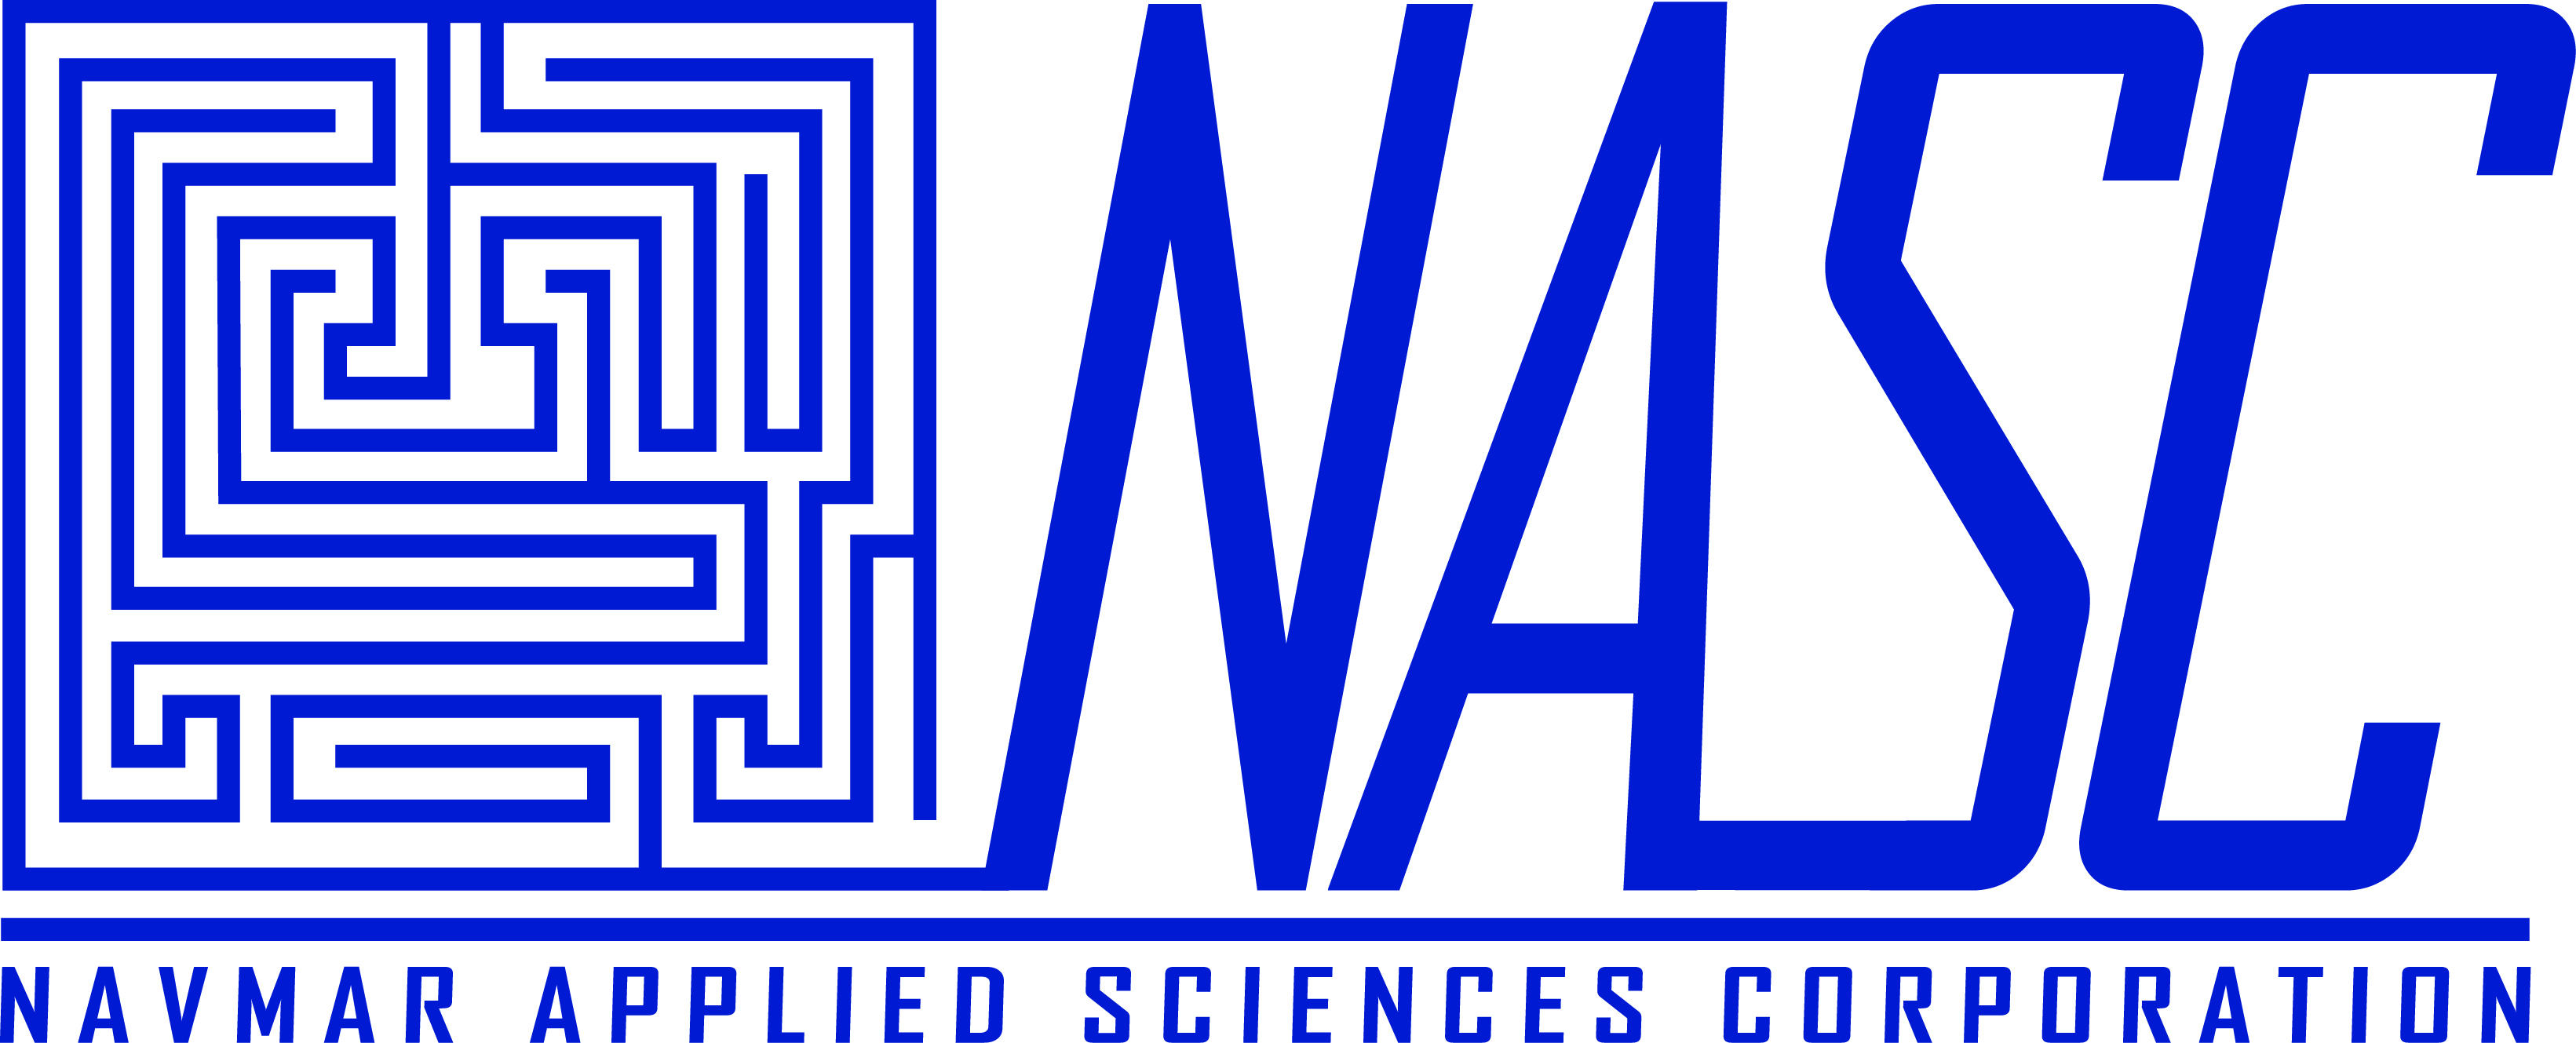 Navmar Applied Sciences Corporation